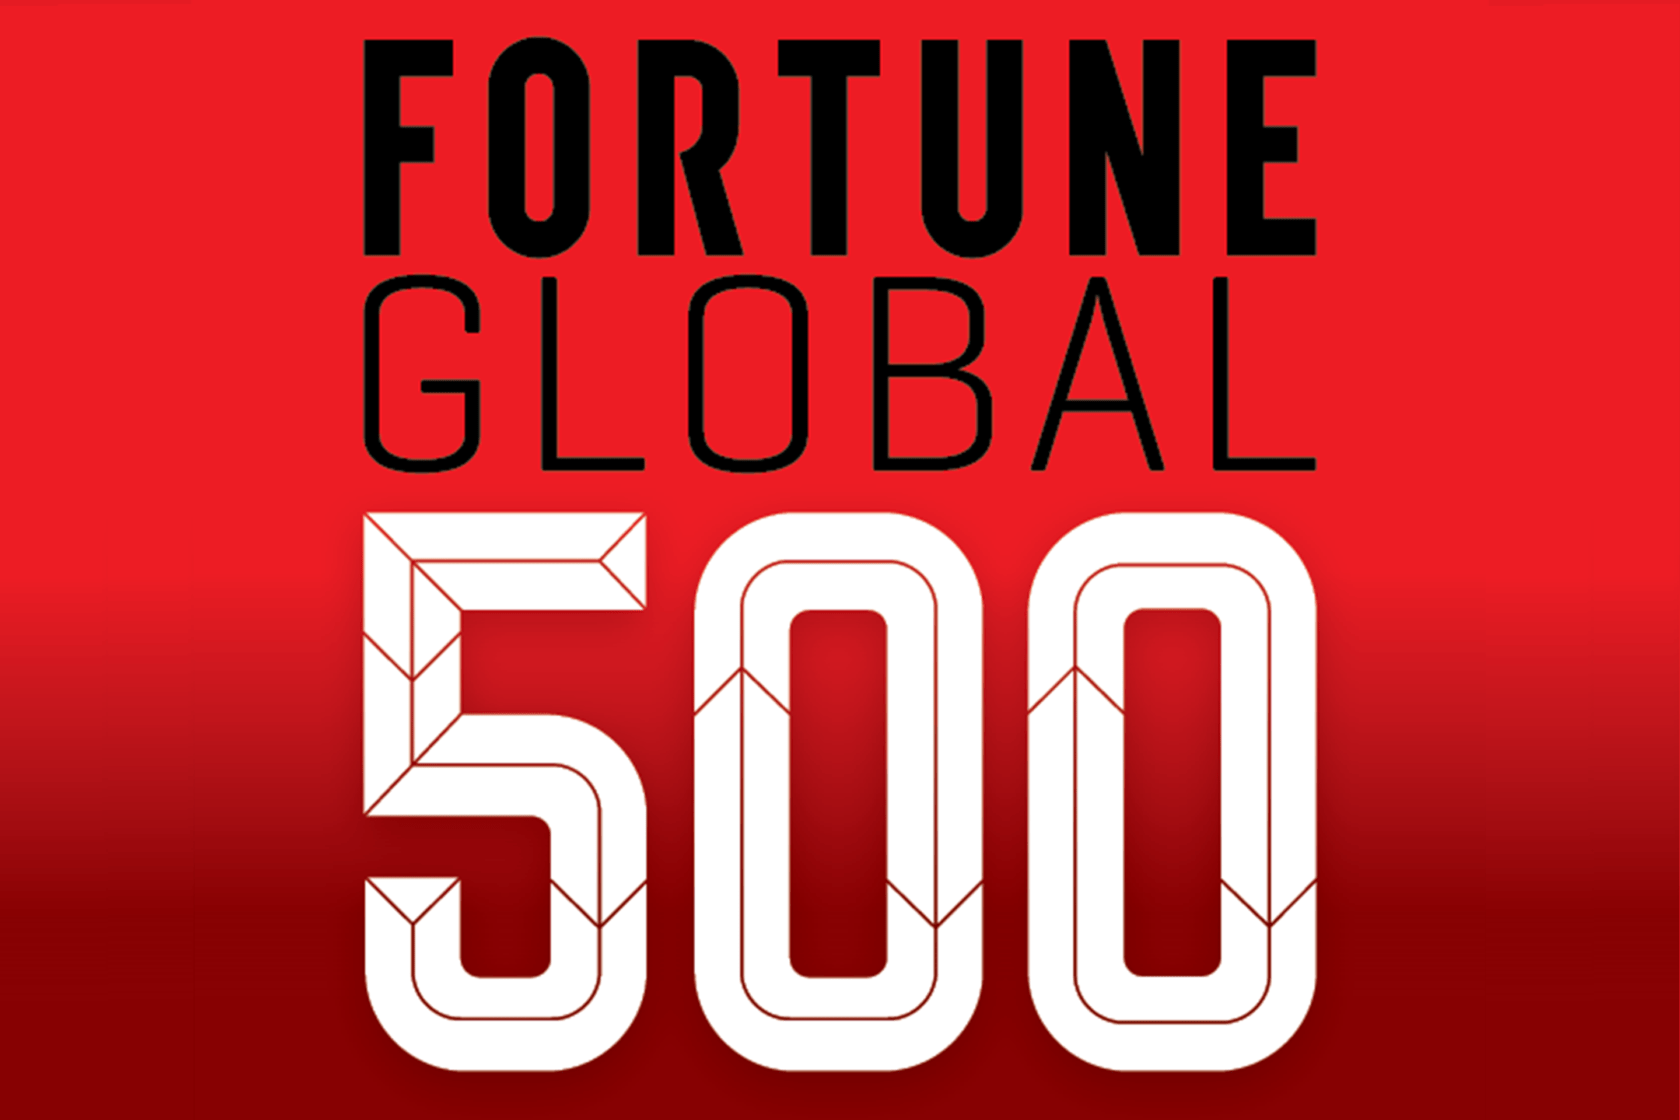 Cos'è il Fortune Global 500?